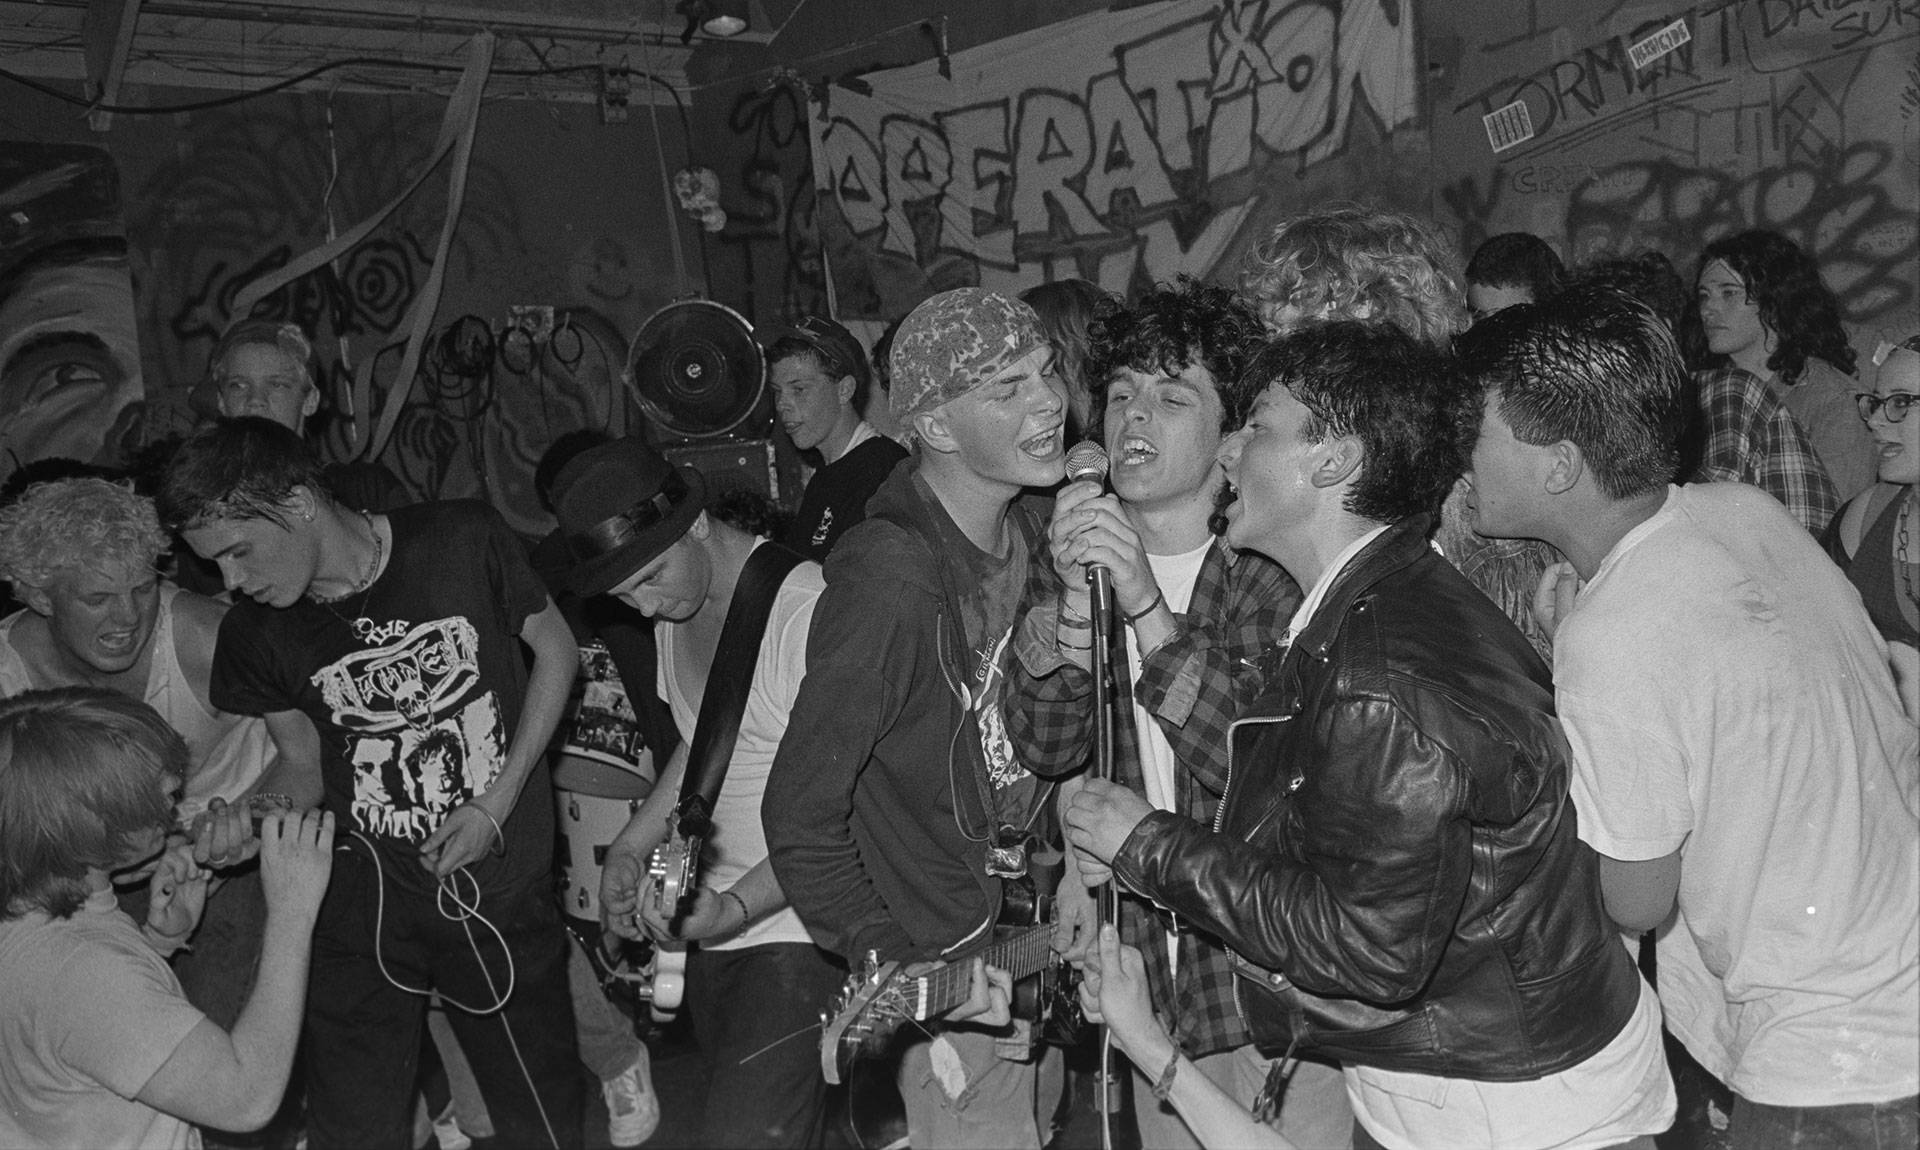 Billie Joe Armstrong (third from right) sings with Operation Ivy onstage at 924 Gilman, circa 1988.  Photo: Murray Bowles